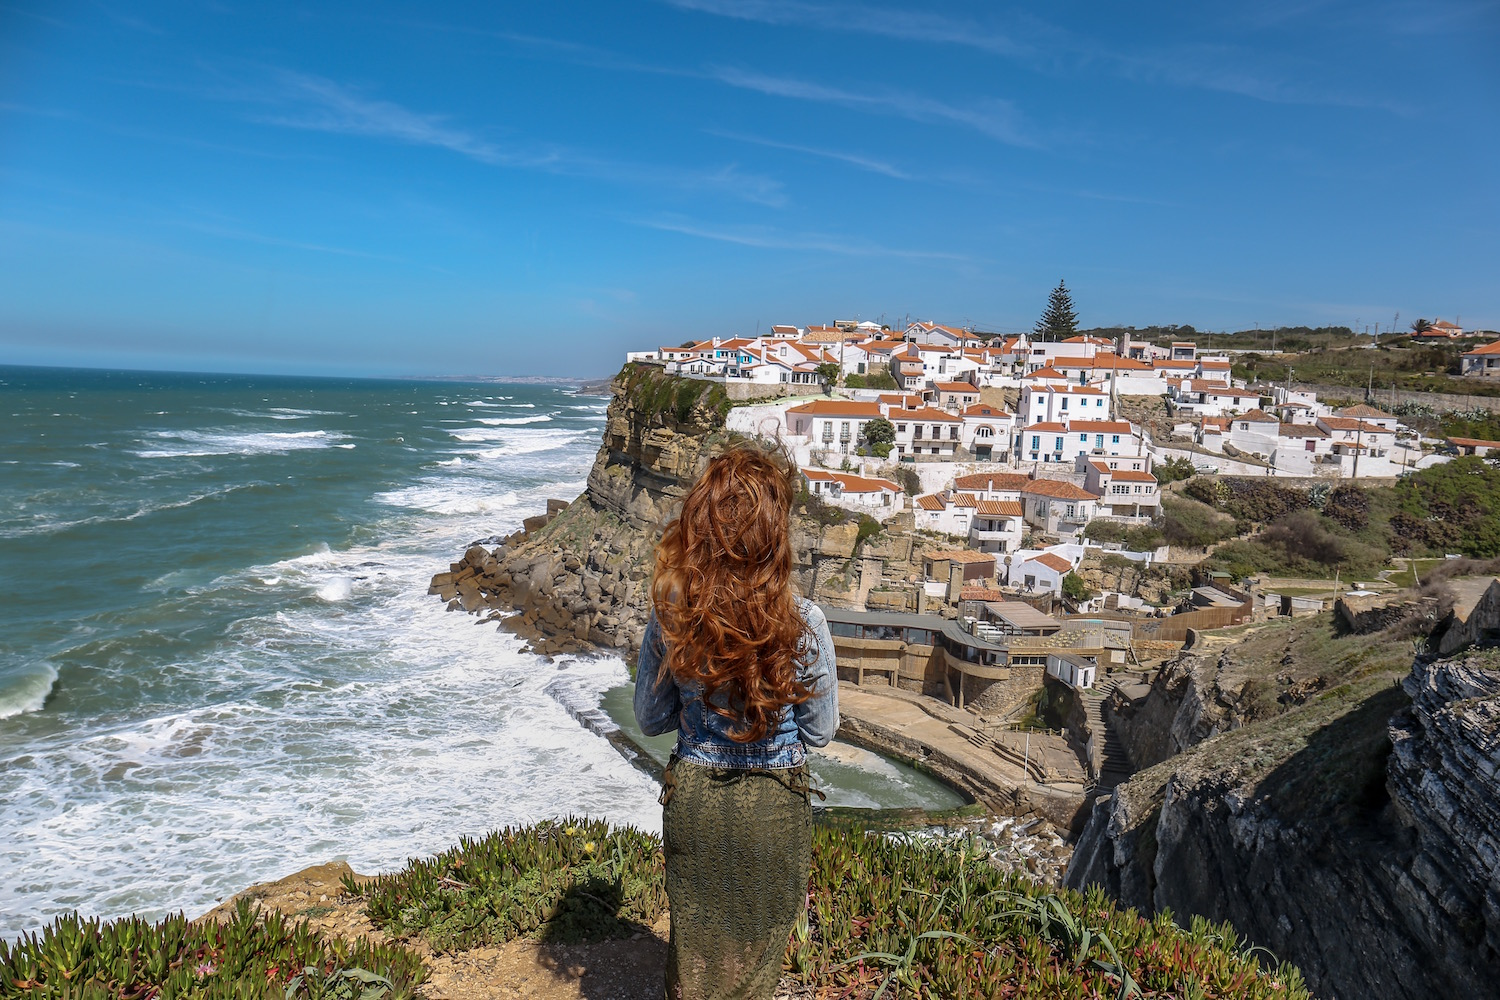 The beautiful views at  Azenhas do Mar